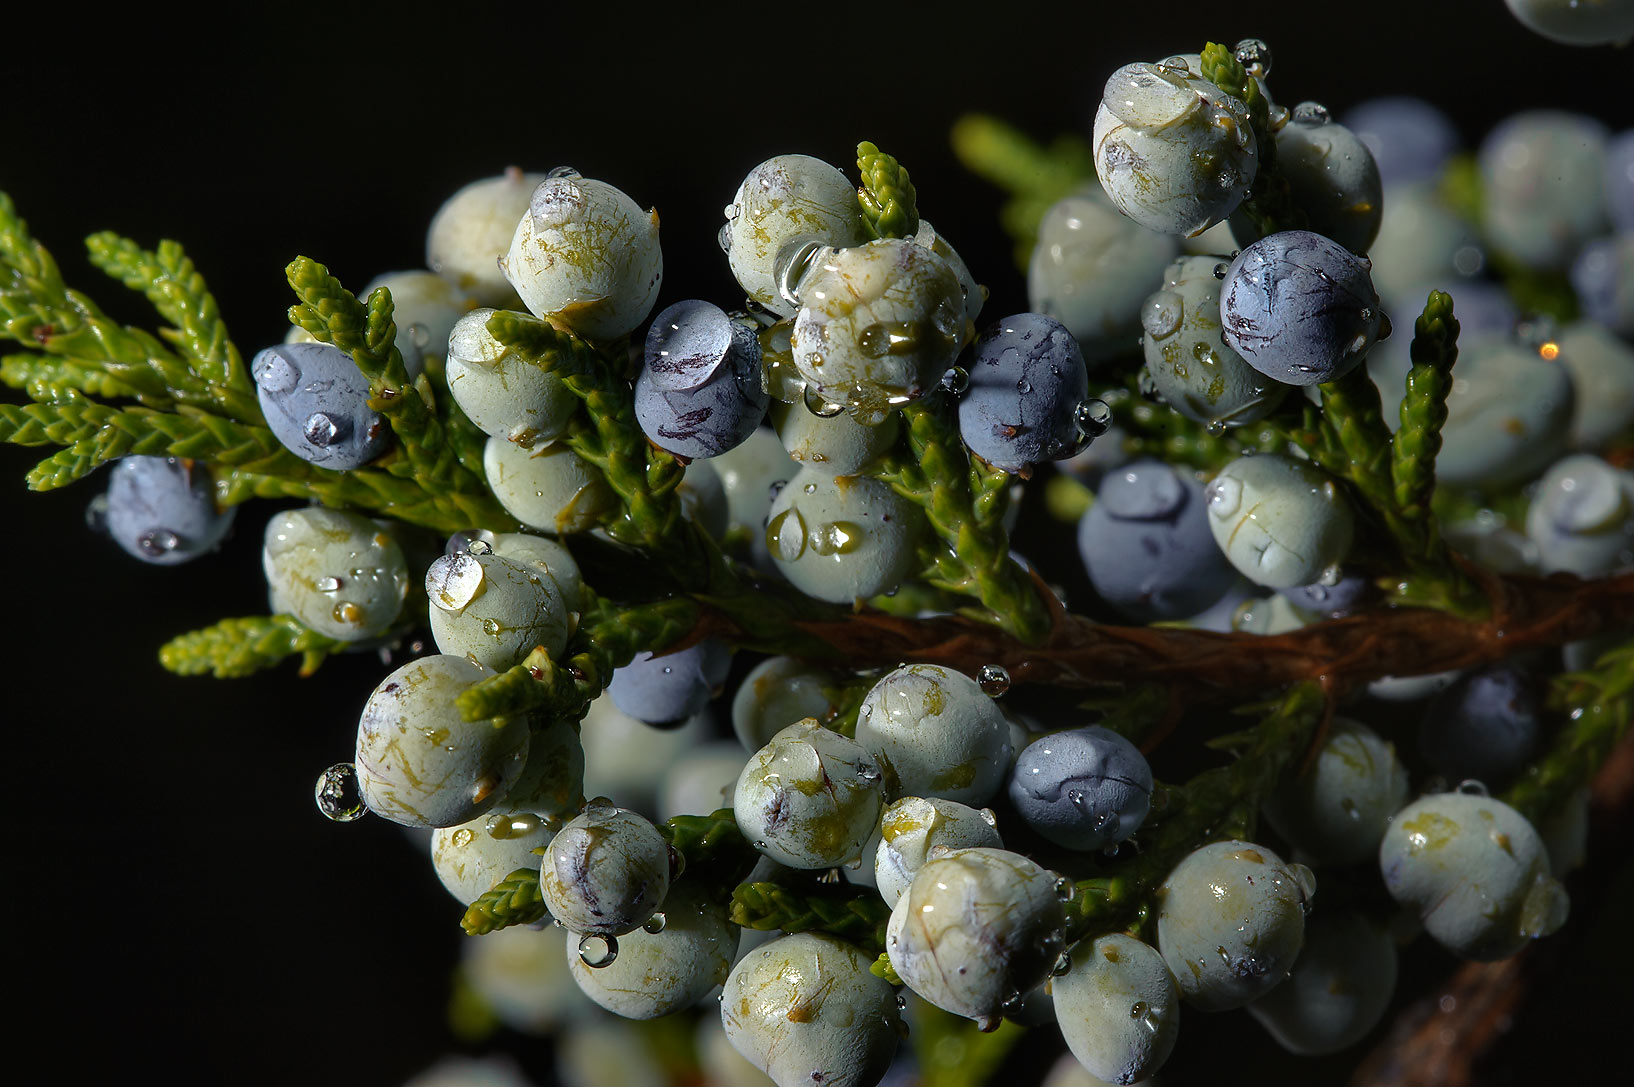 Juniper like berries of cedar in TAMU...M University. College Station, Texas